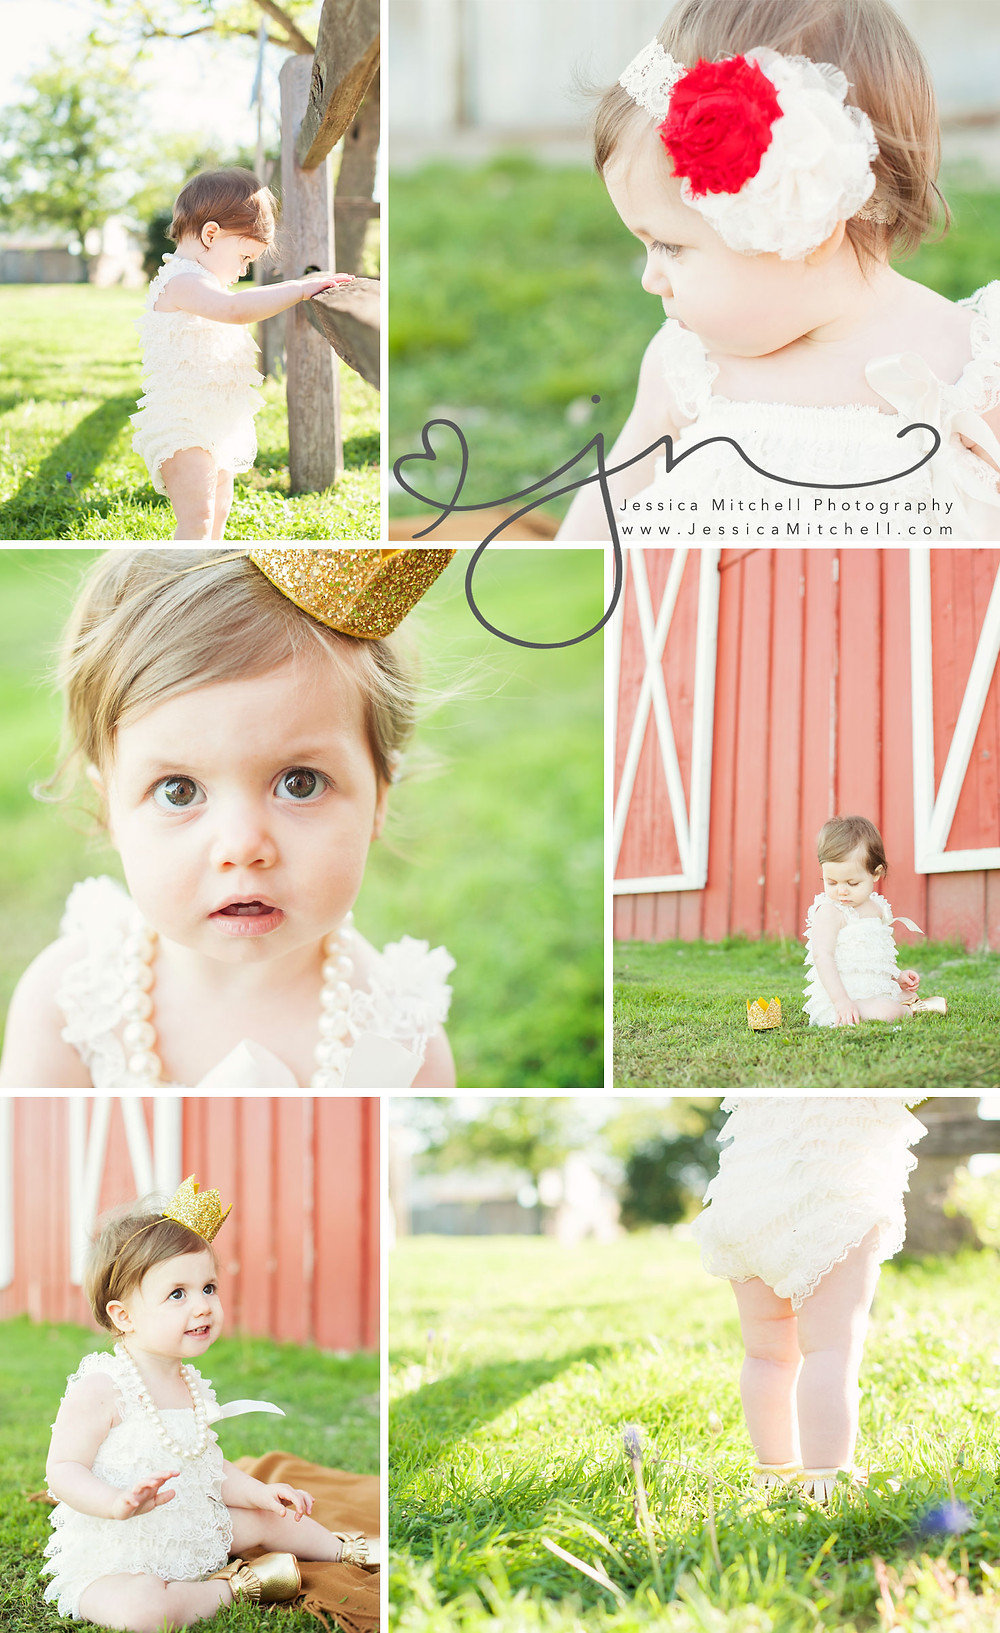 One-Year-Photographer-Austin-Tx-Children-Photography-Jessica-Mitchell